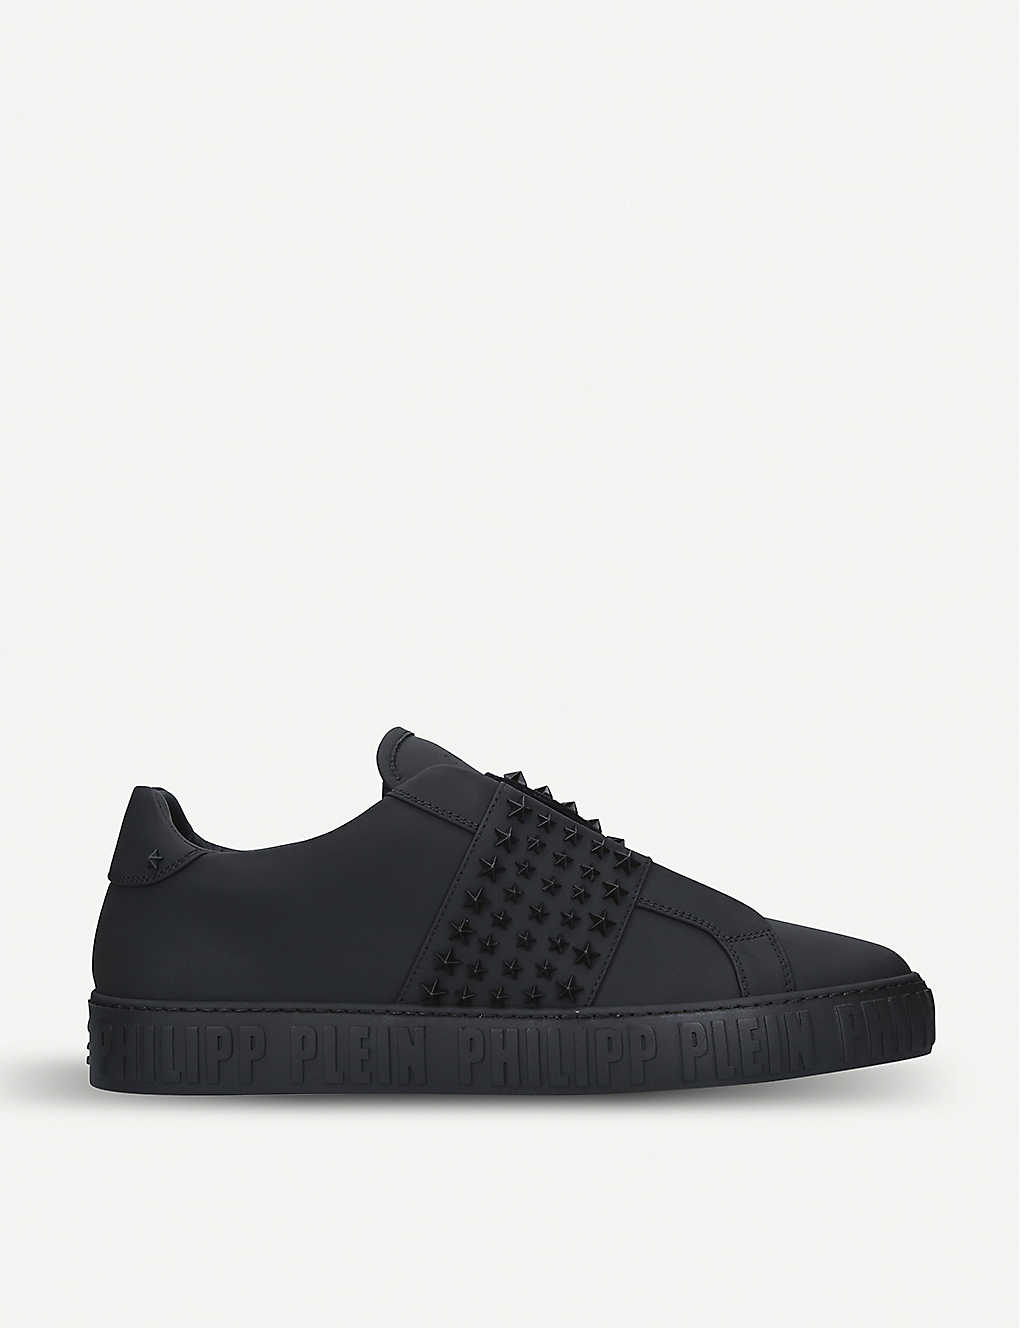 5fd5d6b3a40 PHILIPP PLEIN - Star-appliqué leather trainers | Selfridges.com